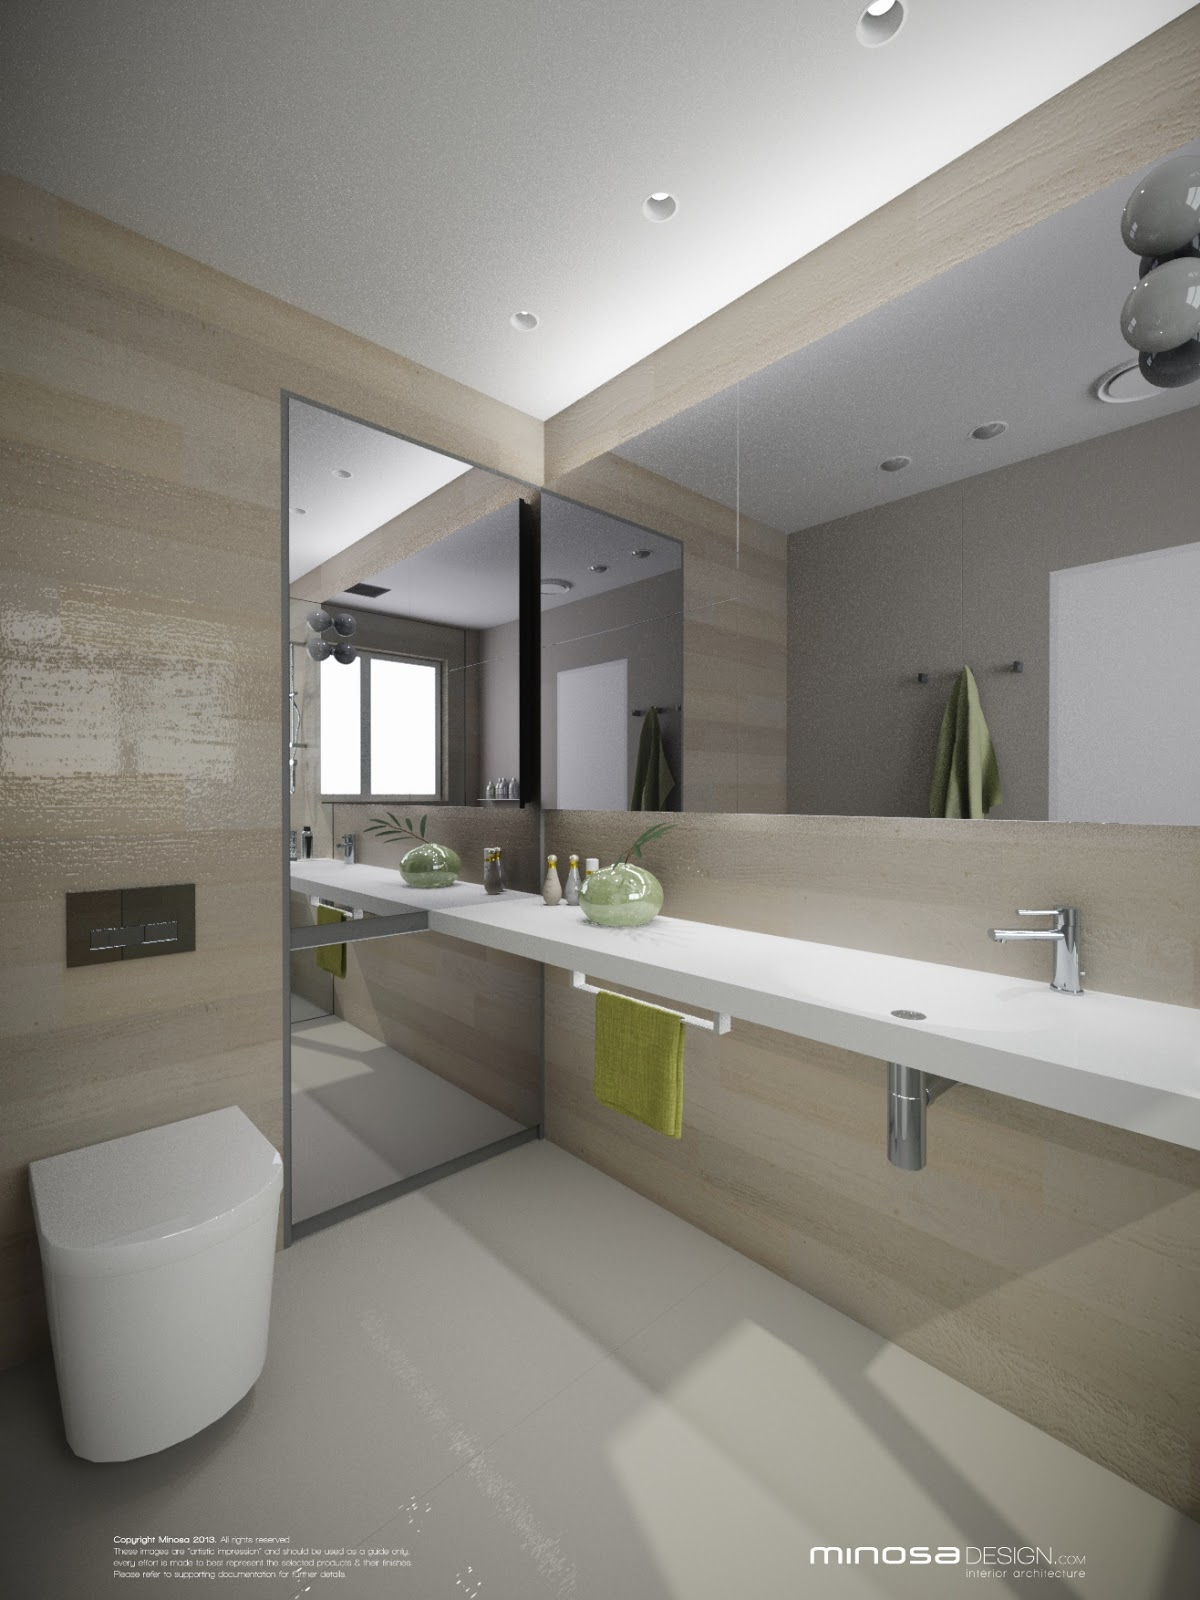 Minosa bringing sexy back the modern bathroom for Australian small bathroom design